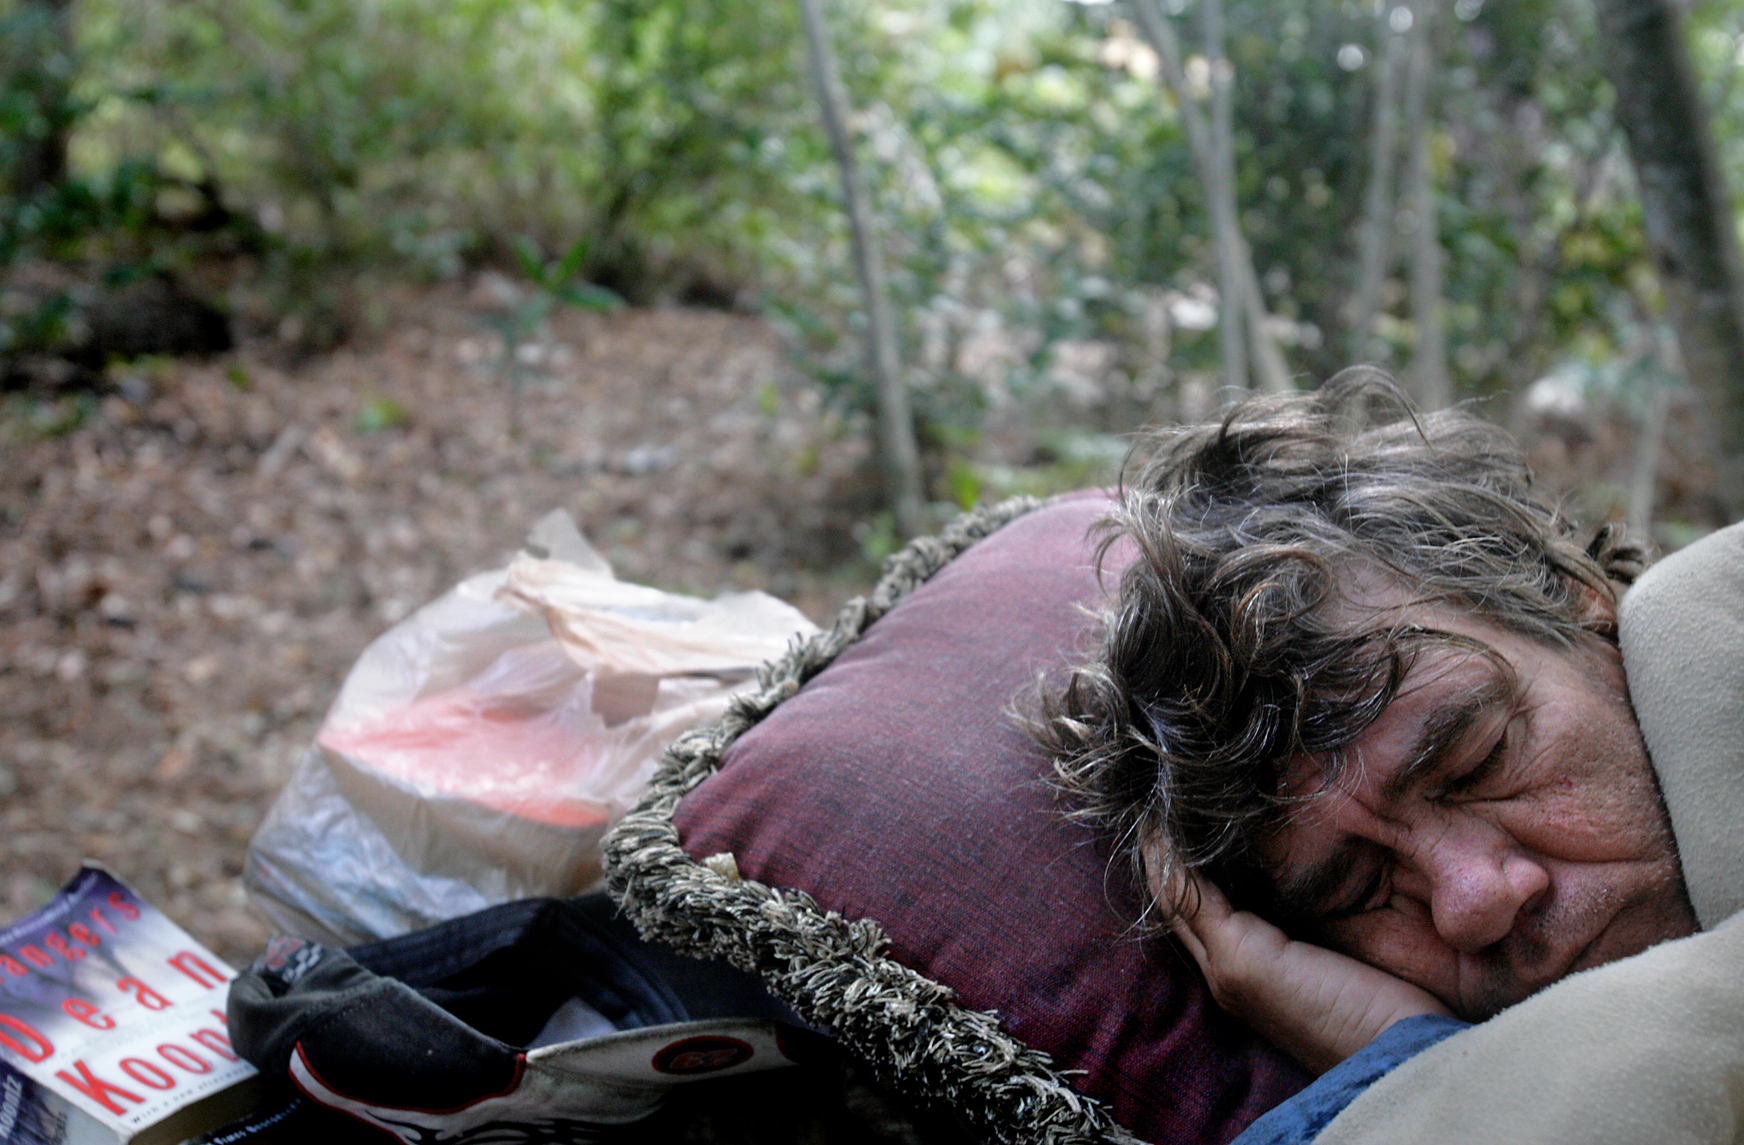 Del, a homeless man in Naples, Florida, finds shelter in the woods behind a shopping center.